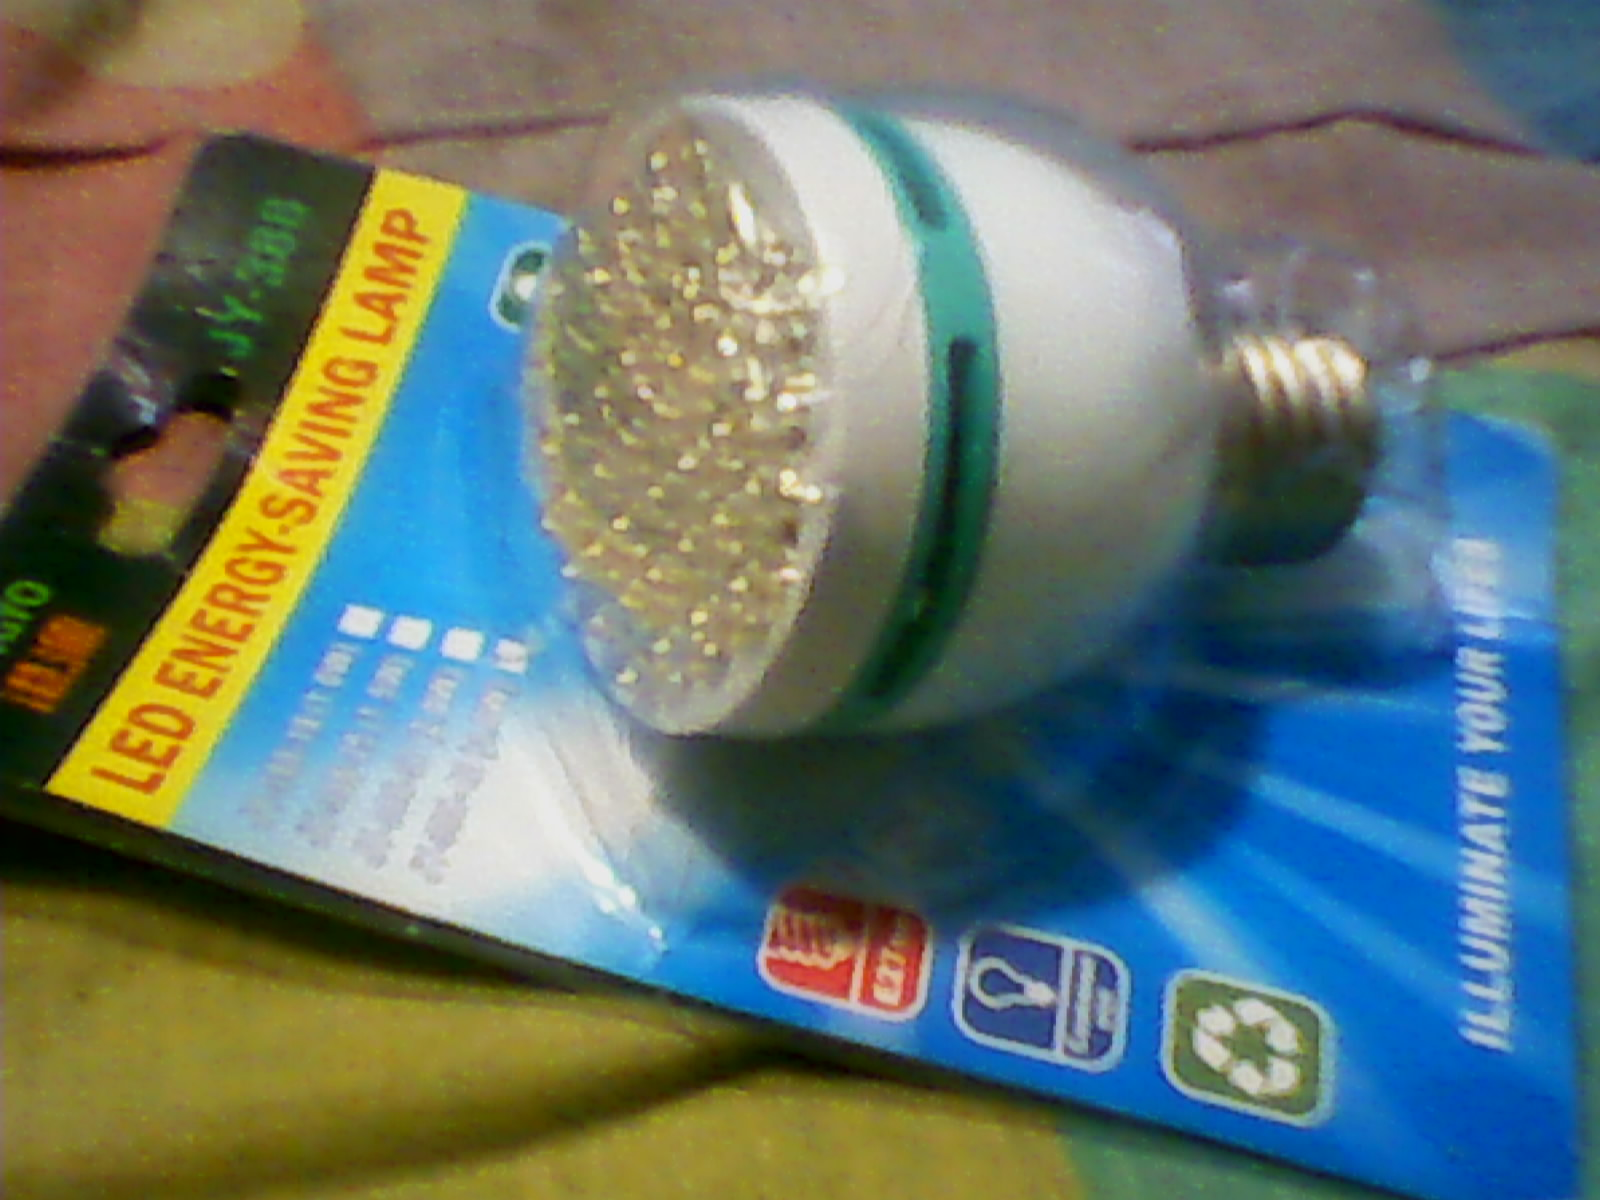 42 Led light